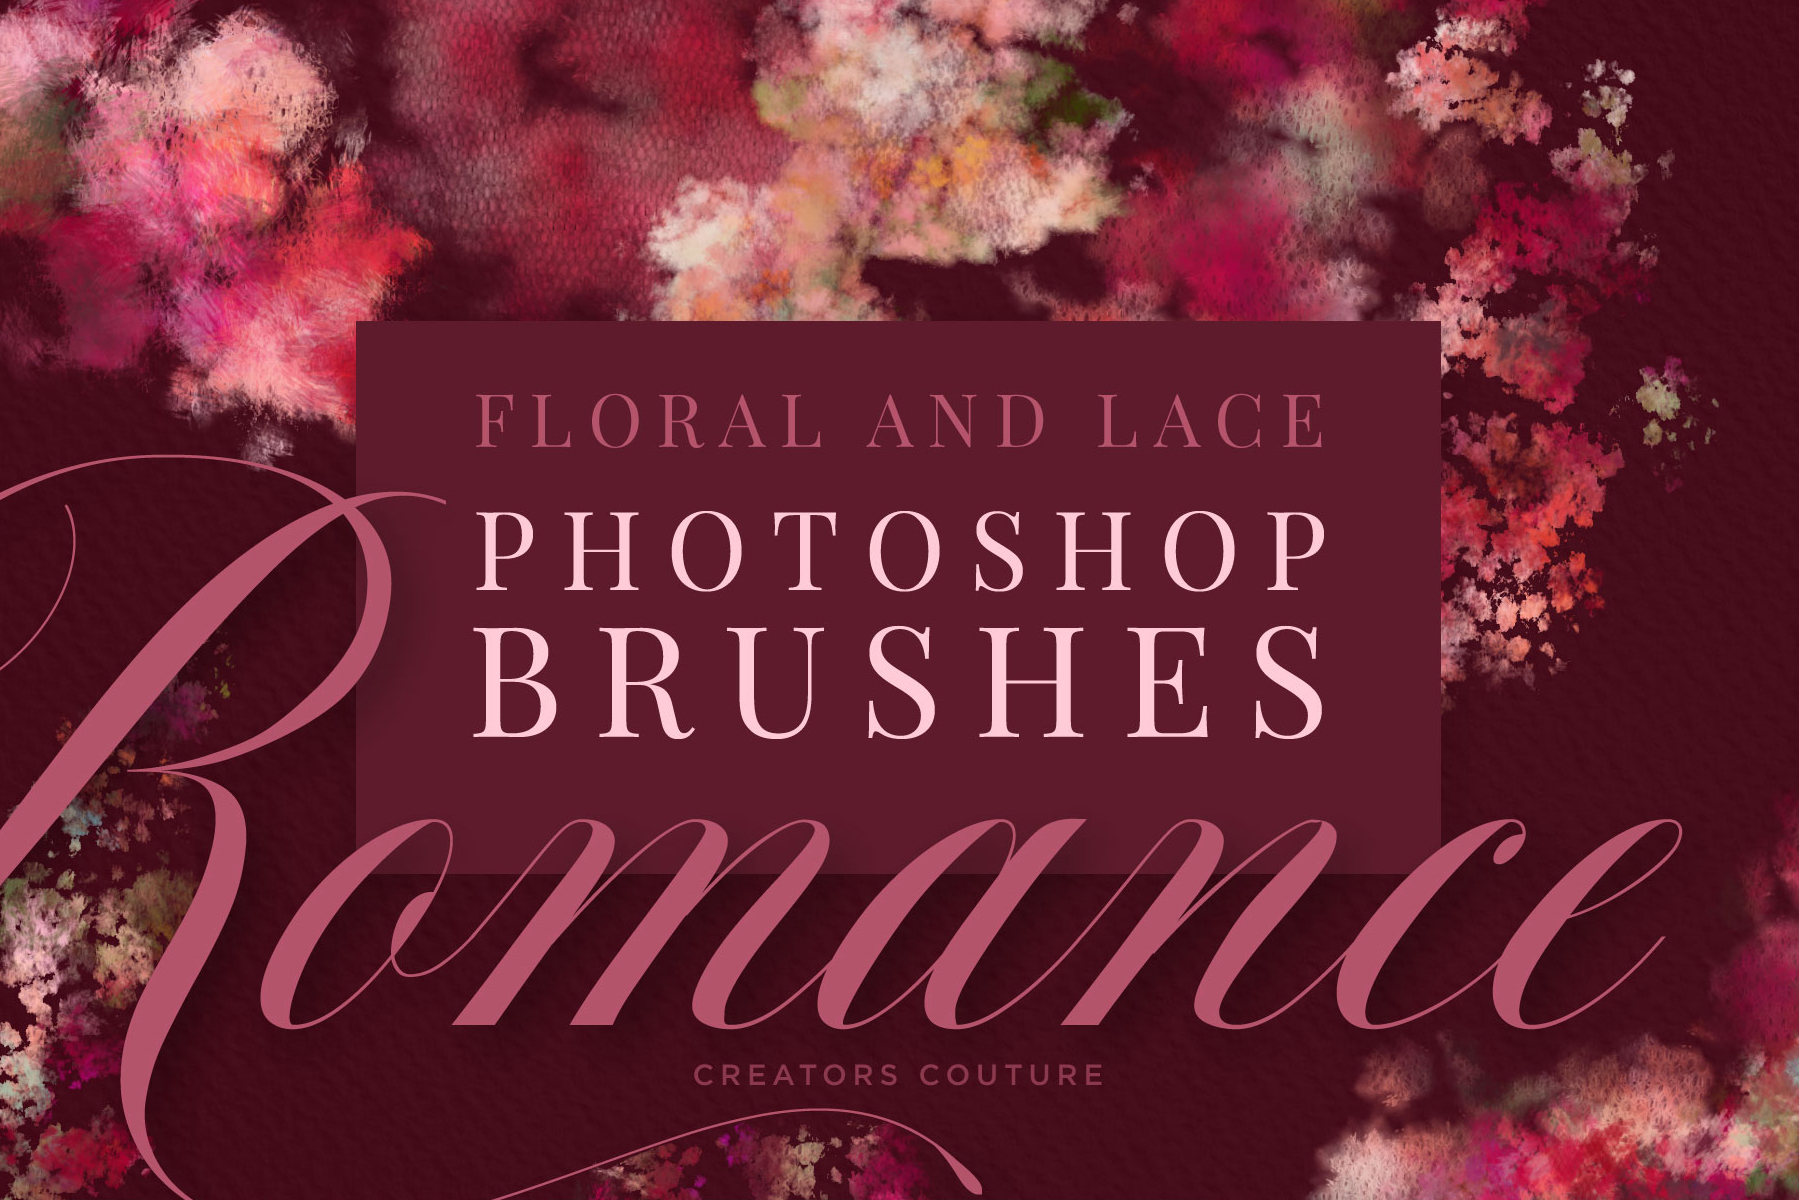 Floral And Lace Photoshop Brushes